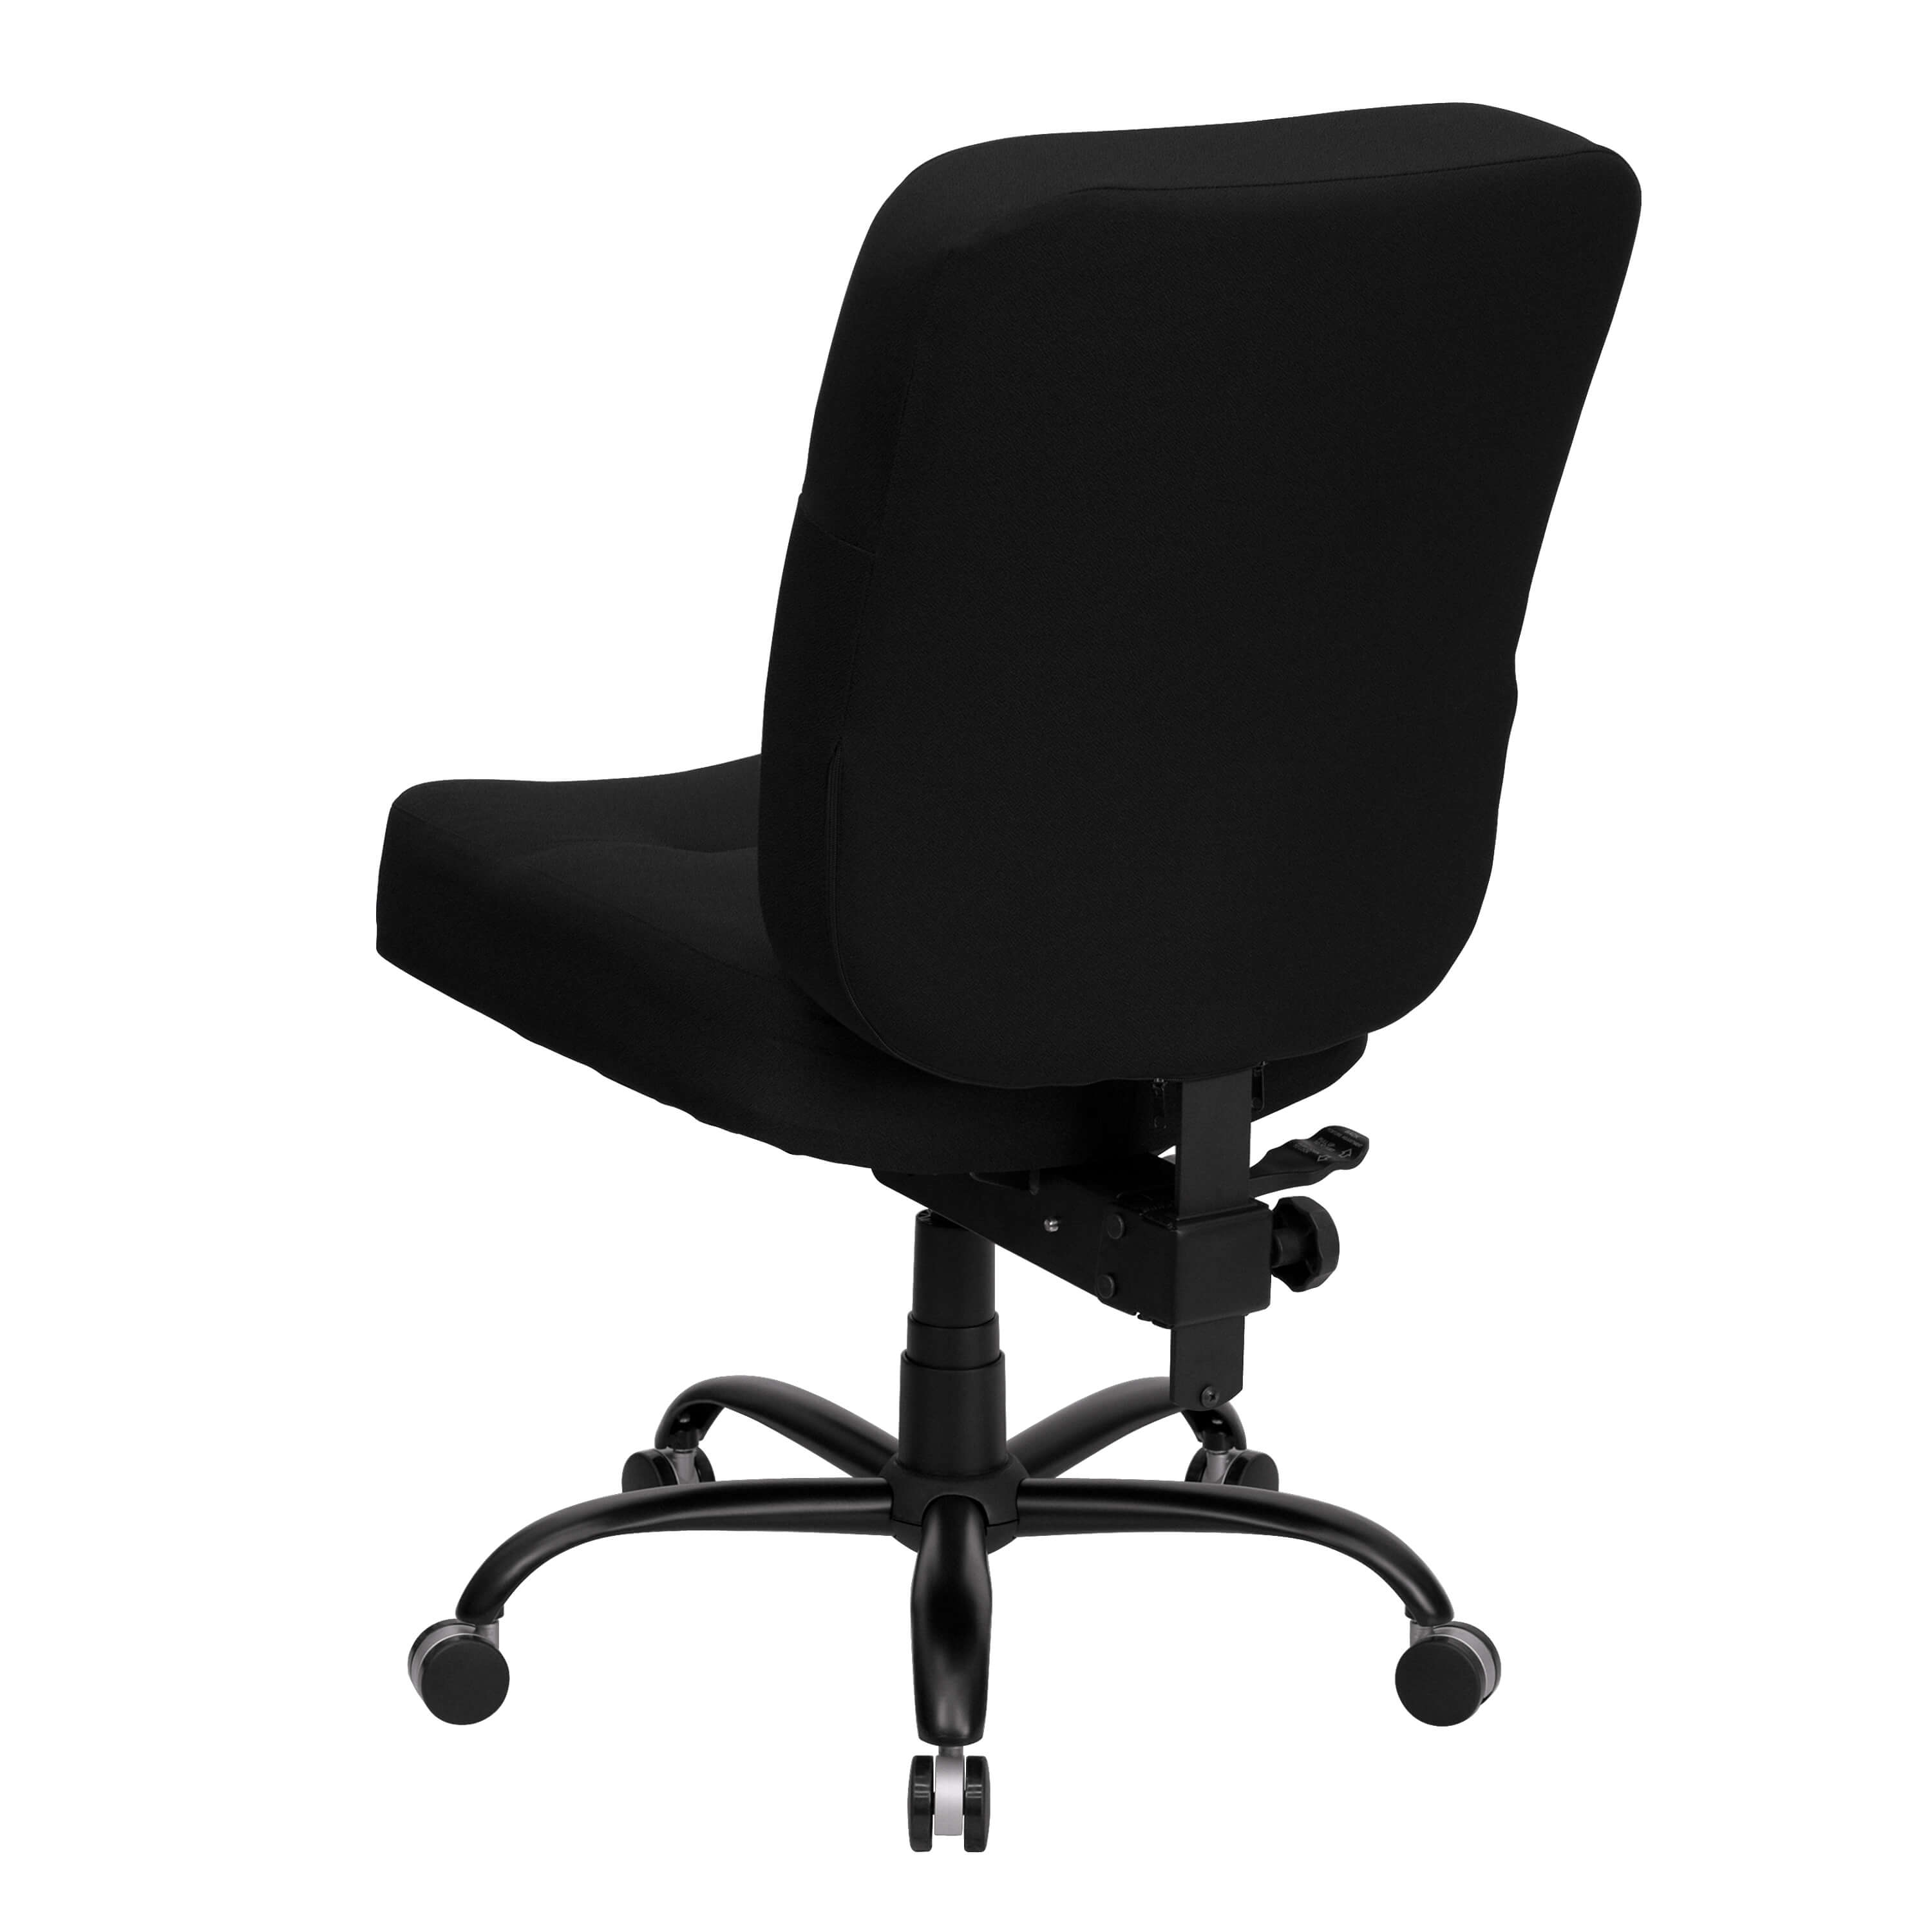 High weight capacity office chair back view